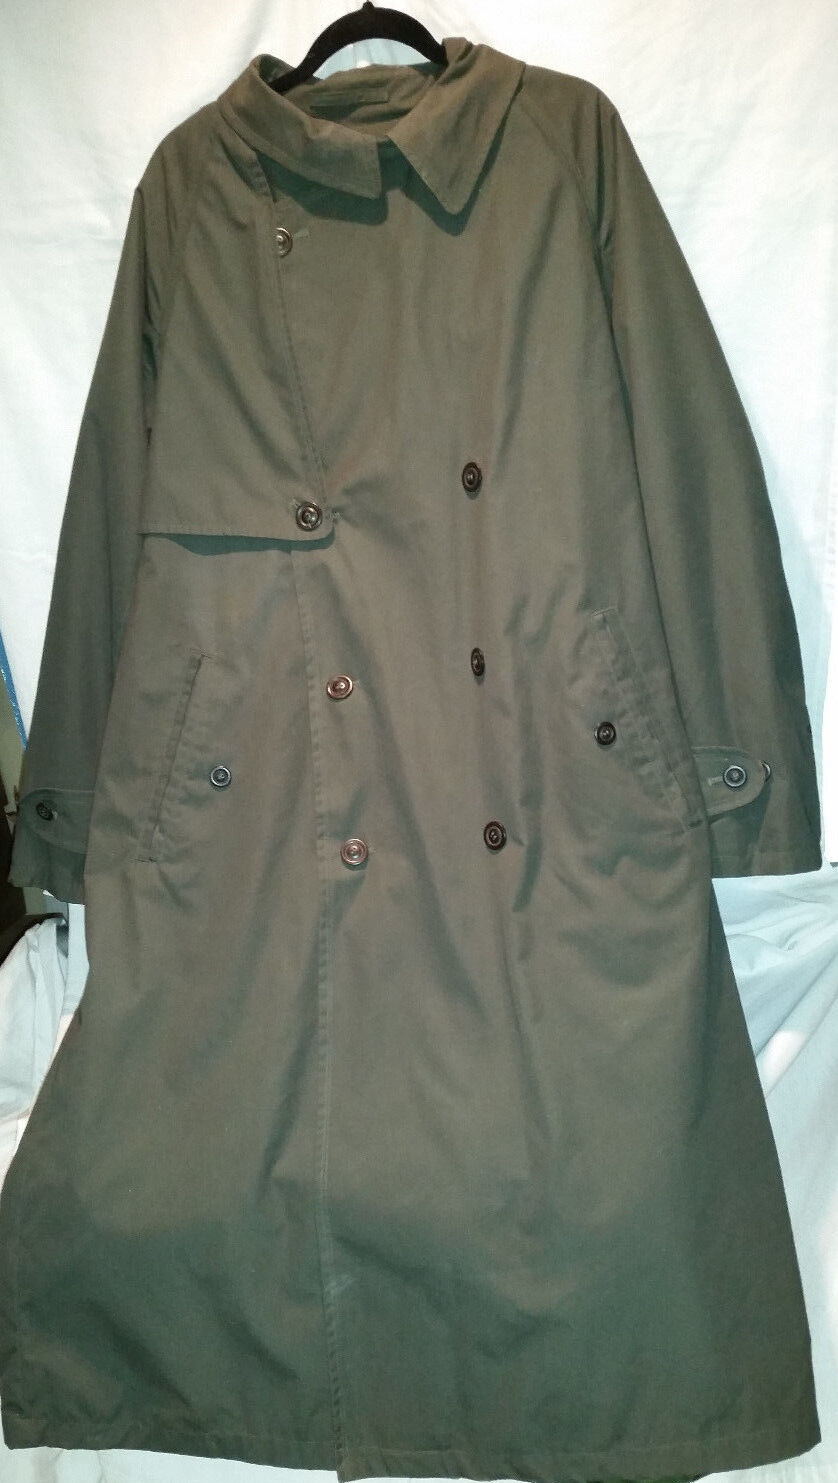 Men's Pierre Cardin Double-Breasted Olive Green Trenchcoat Zipout Liner Size 44R